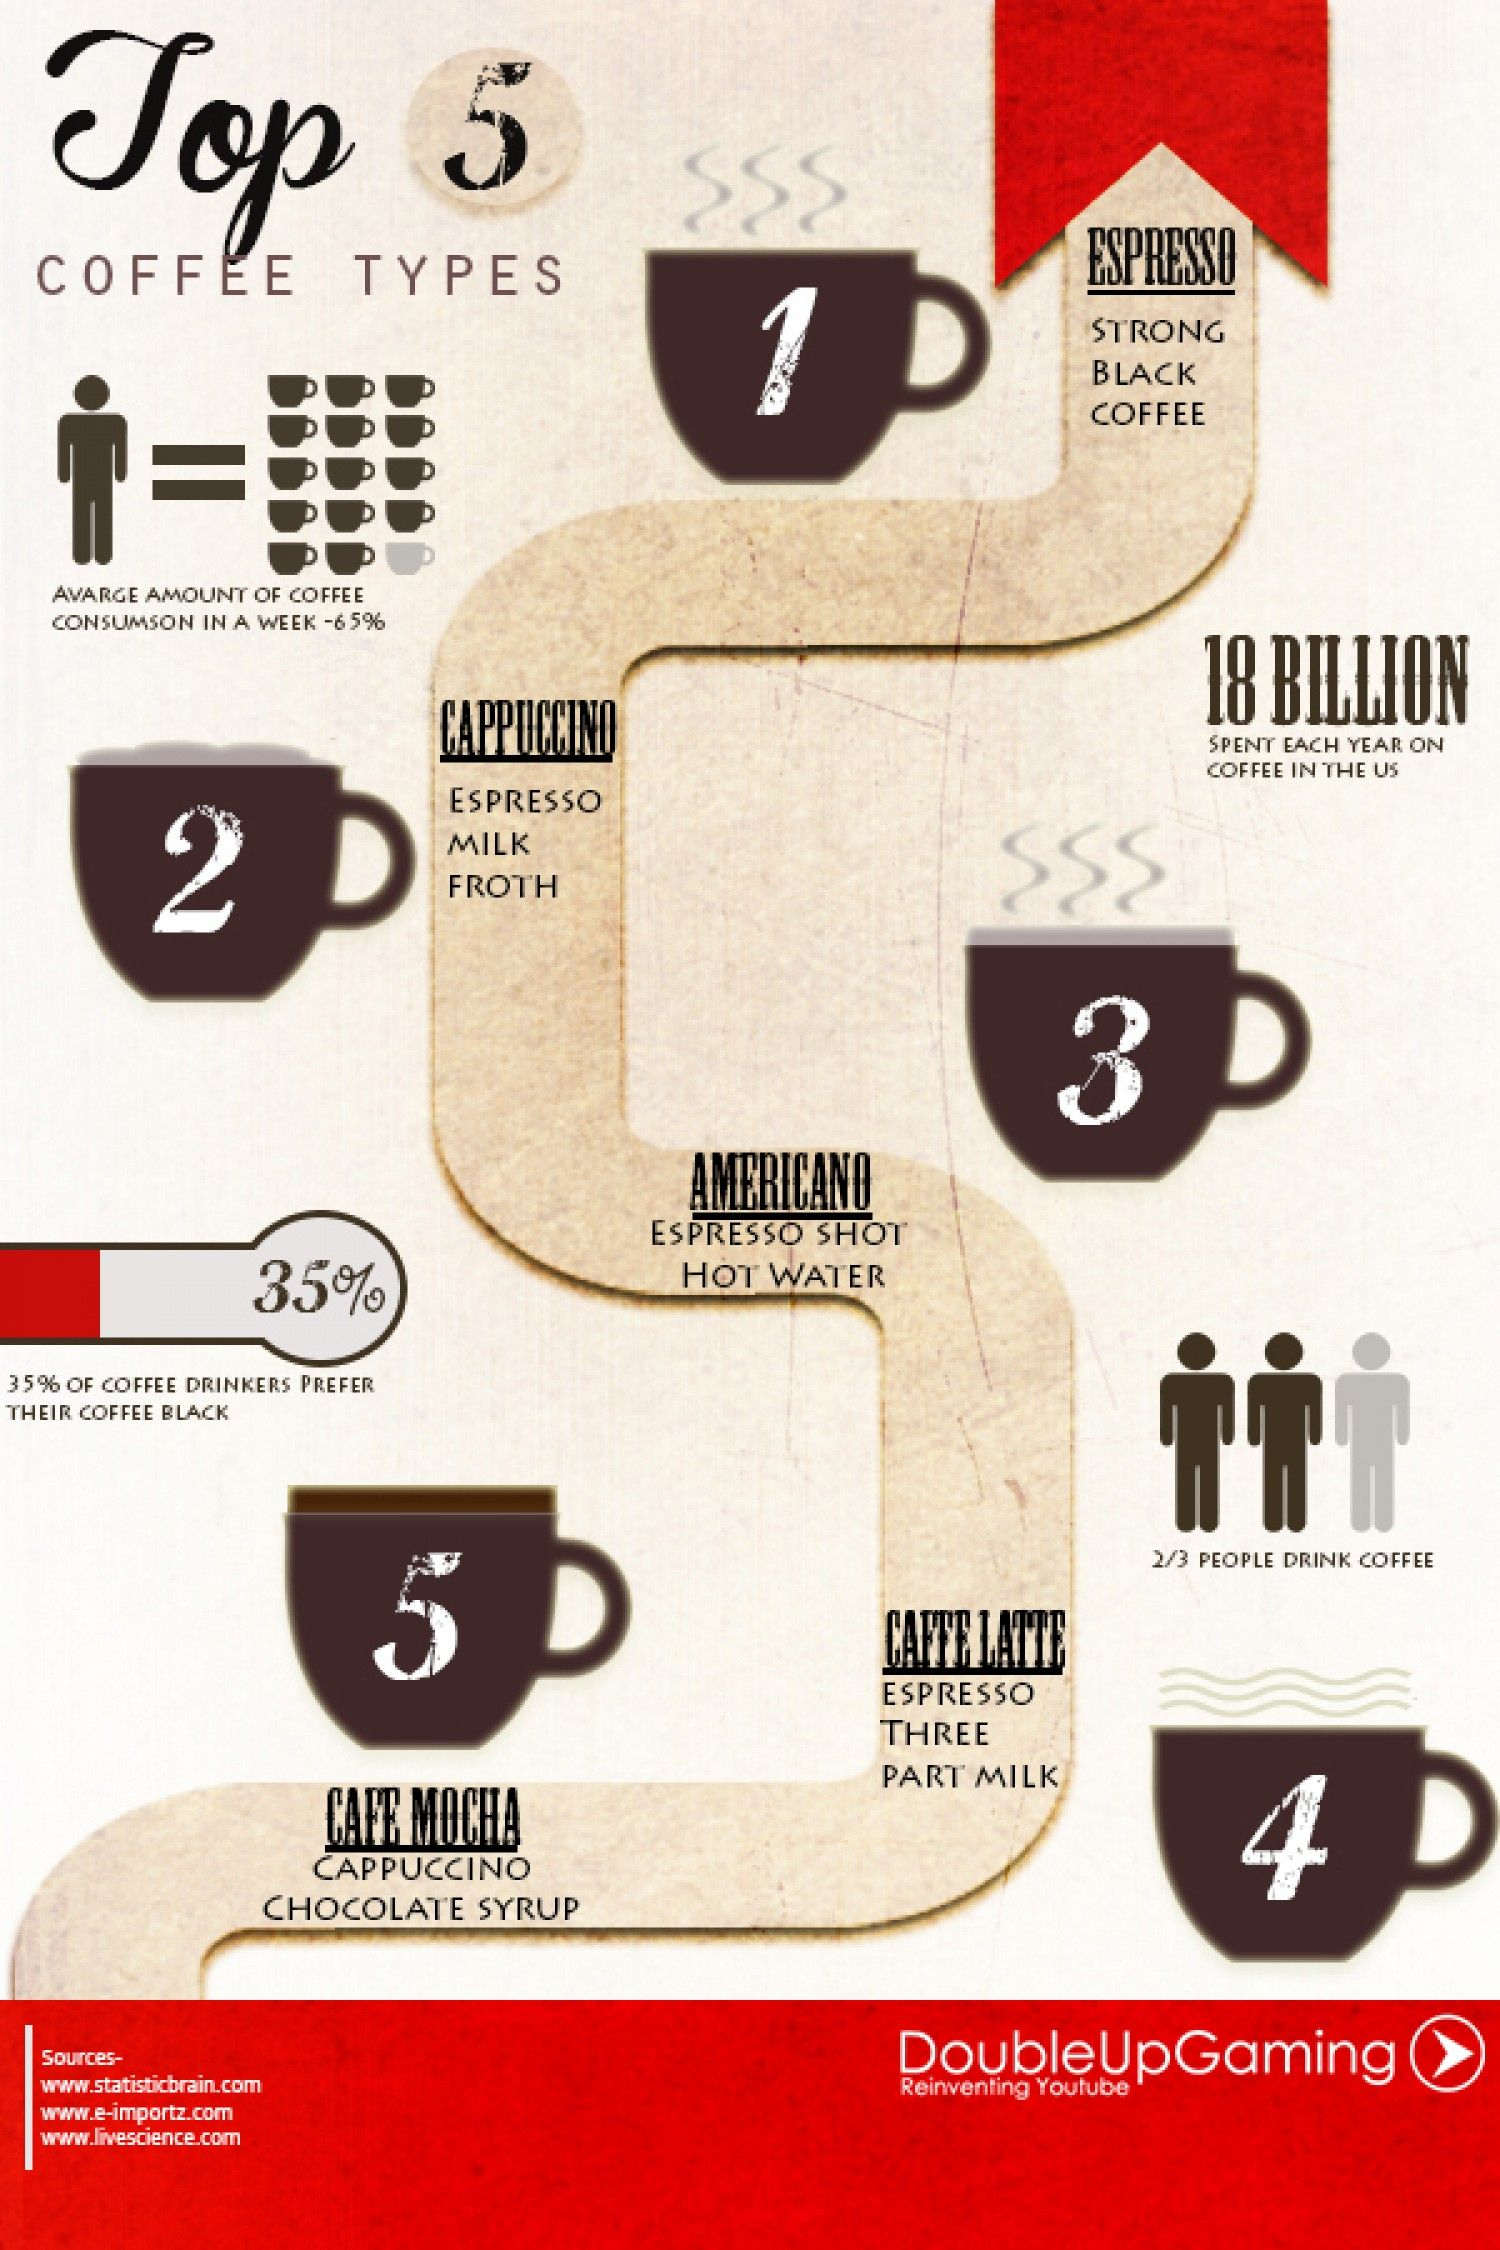 Top 5 Coffee Types Coffee Facts Visual Ly Coffee Type Coffee Facts Tea Infographic